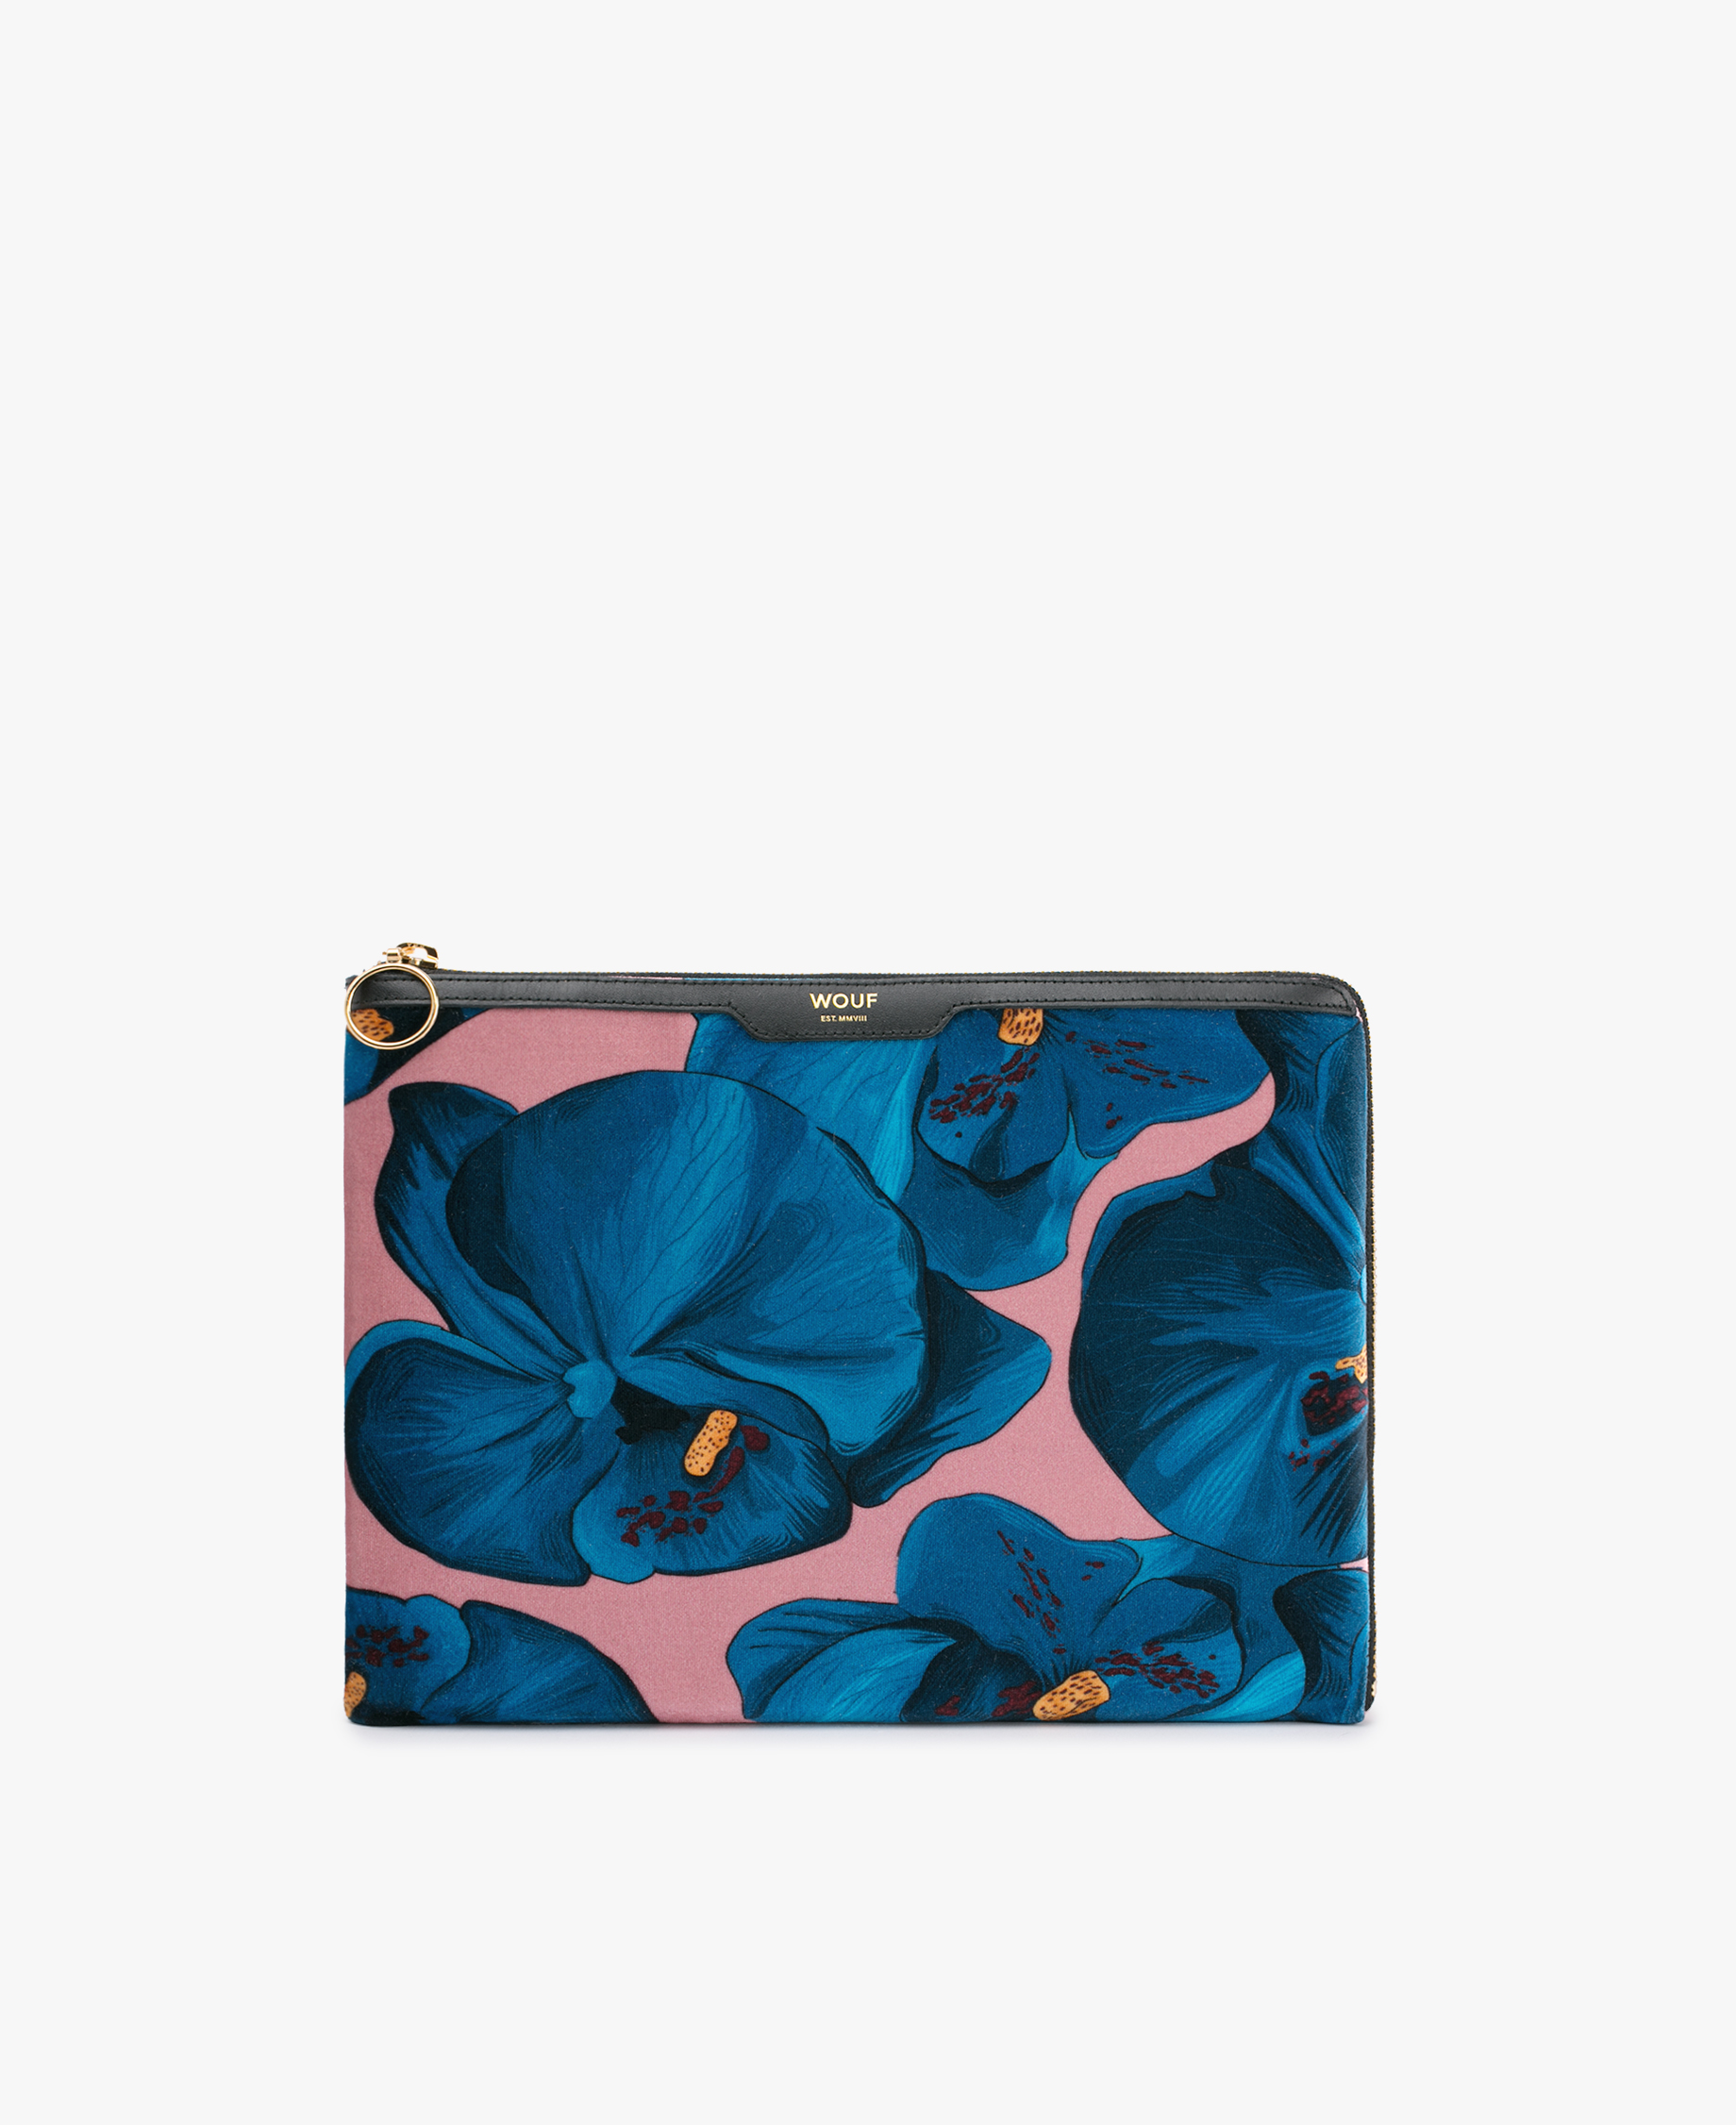 fashionabe velvet ipad case